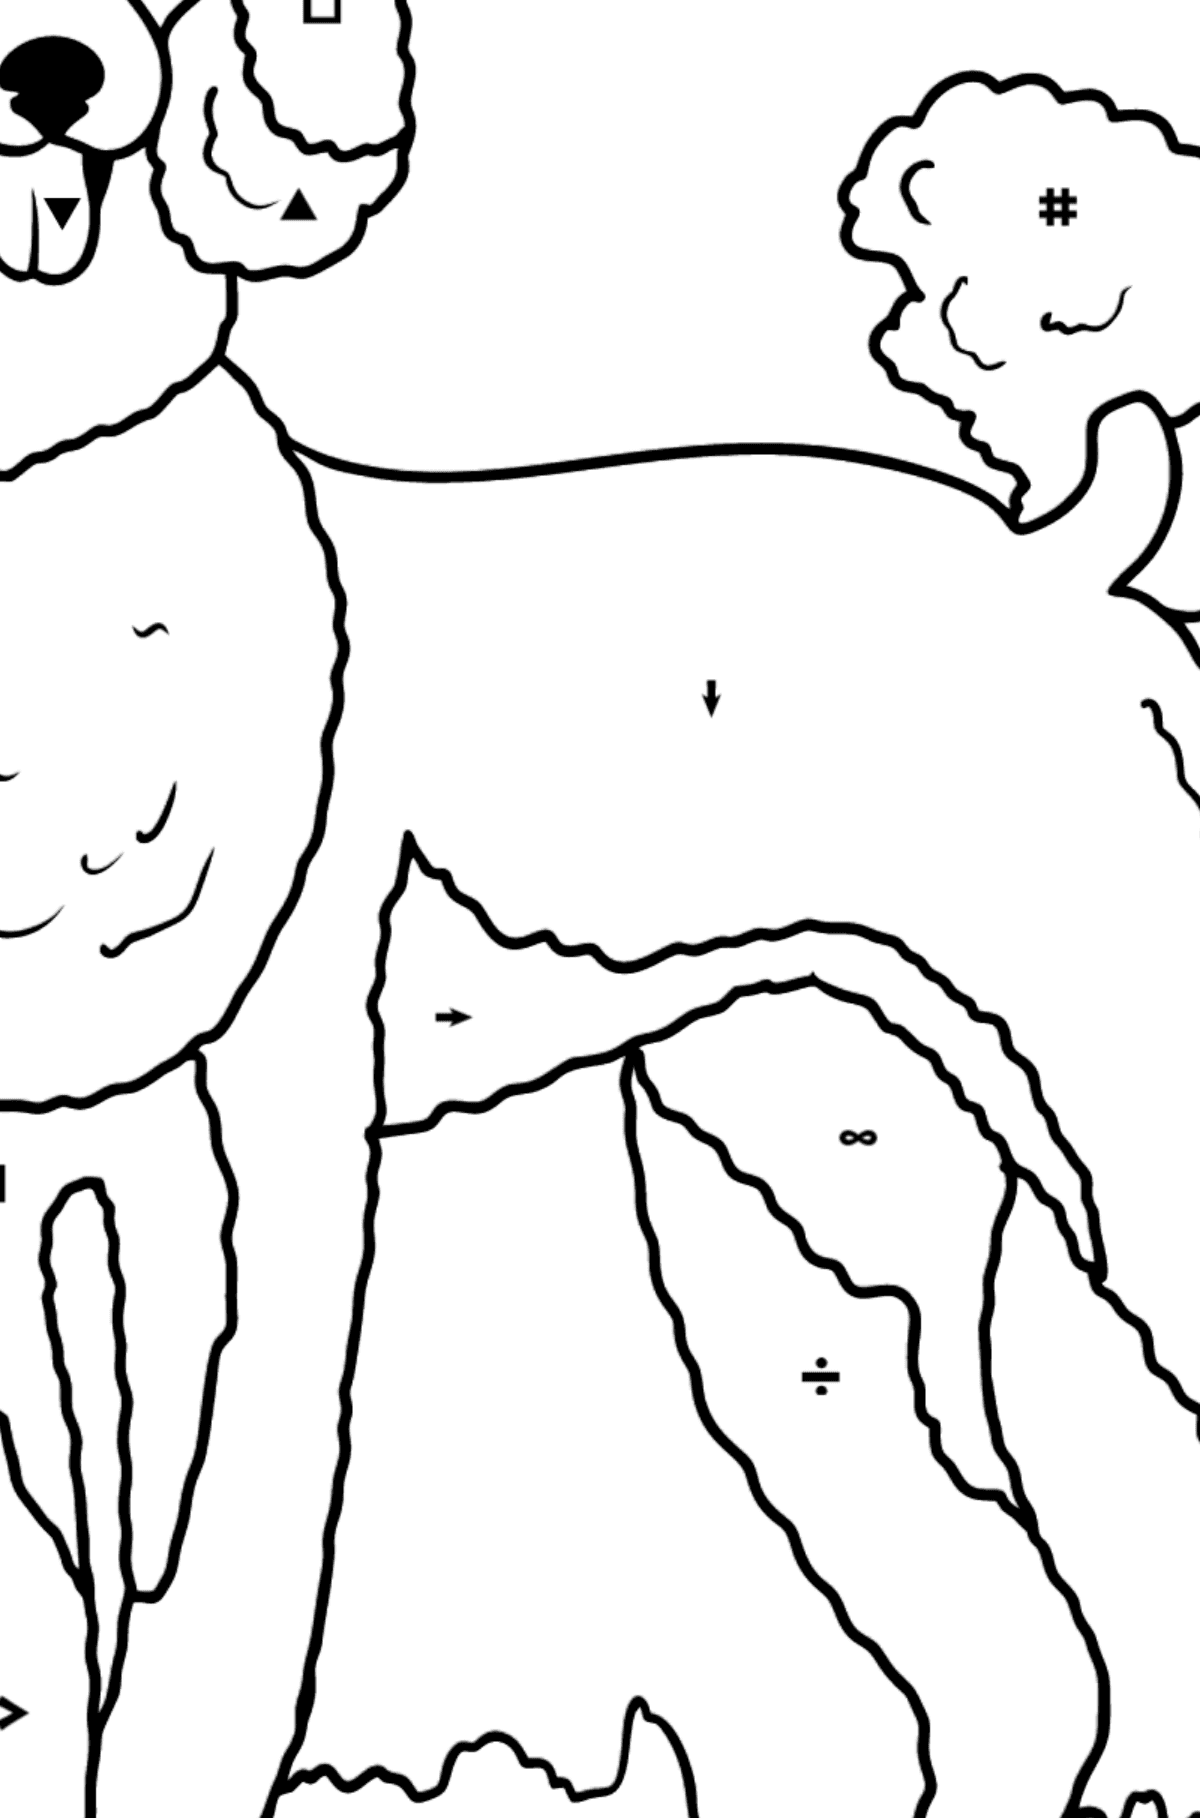 Poodle coloring page - Coloring by Symbols for Kids